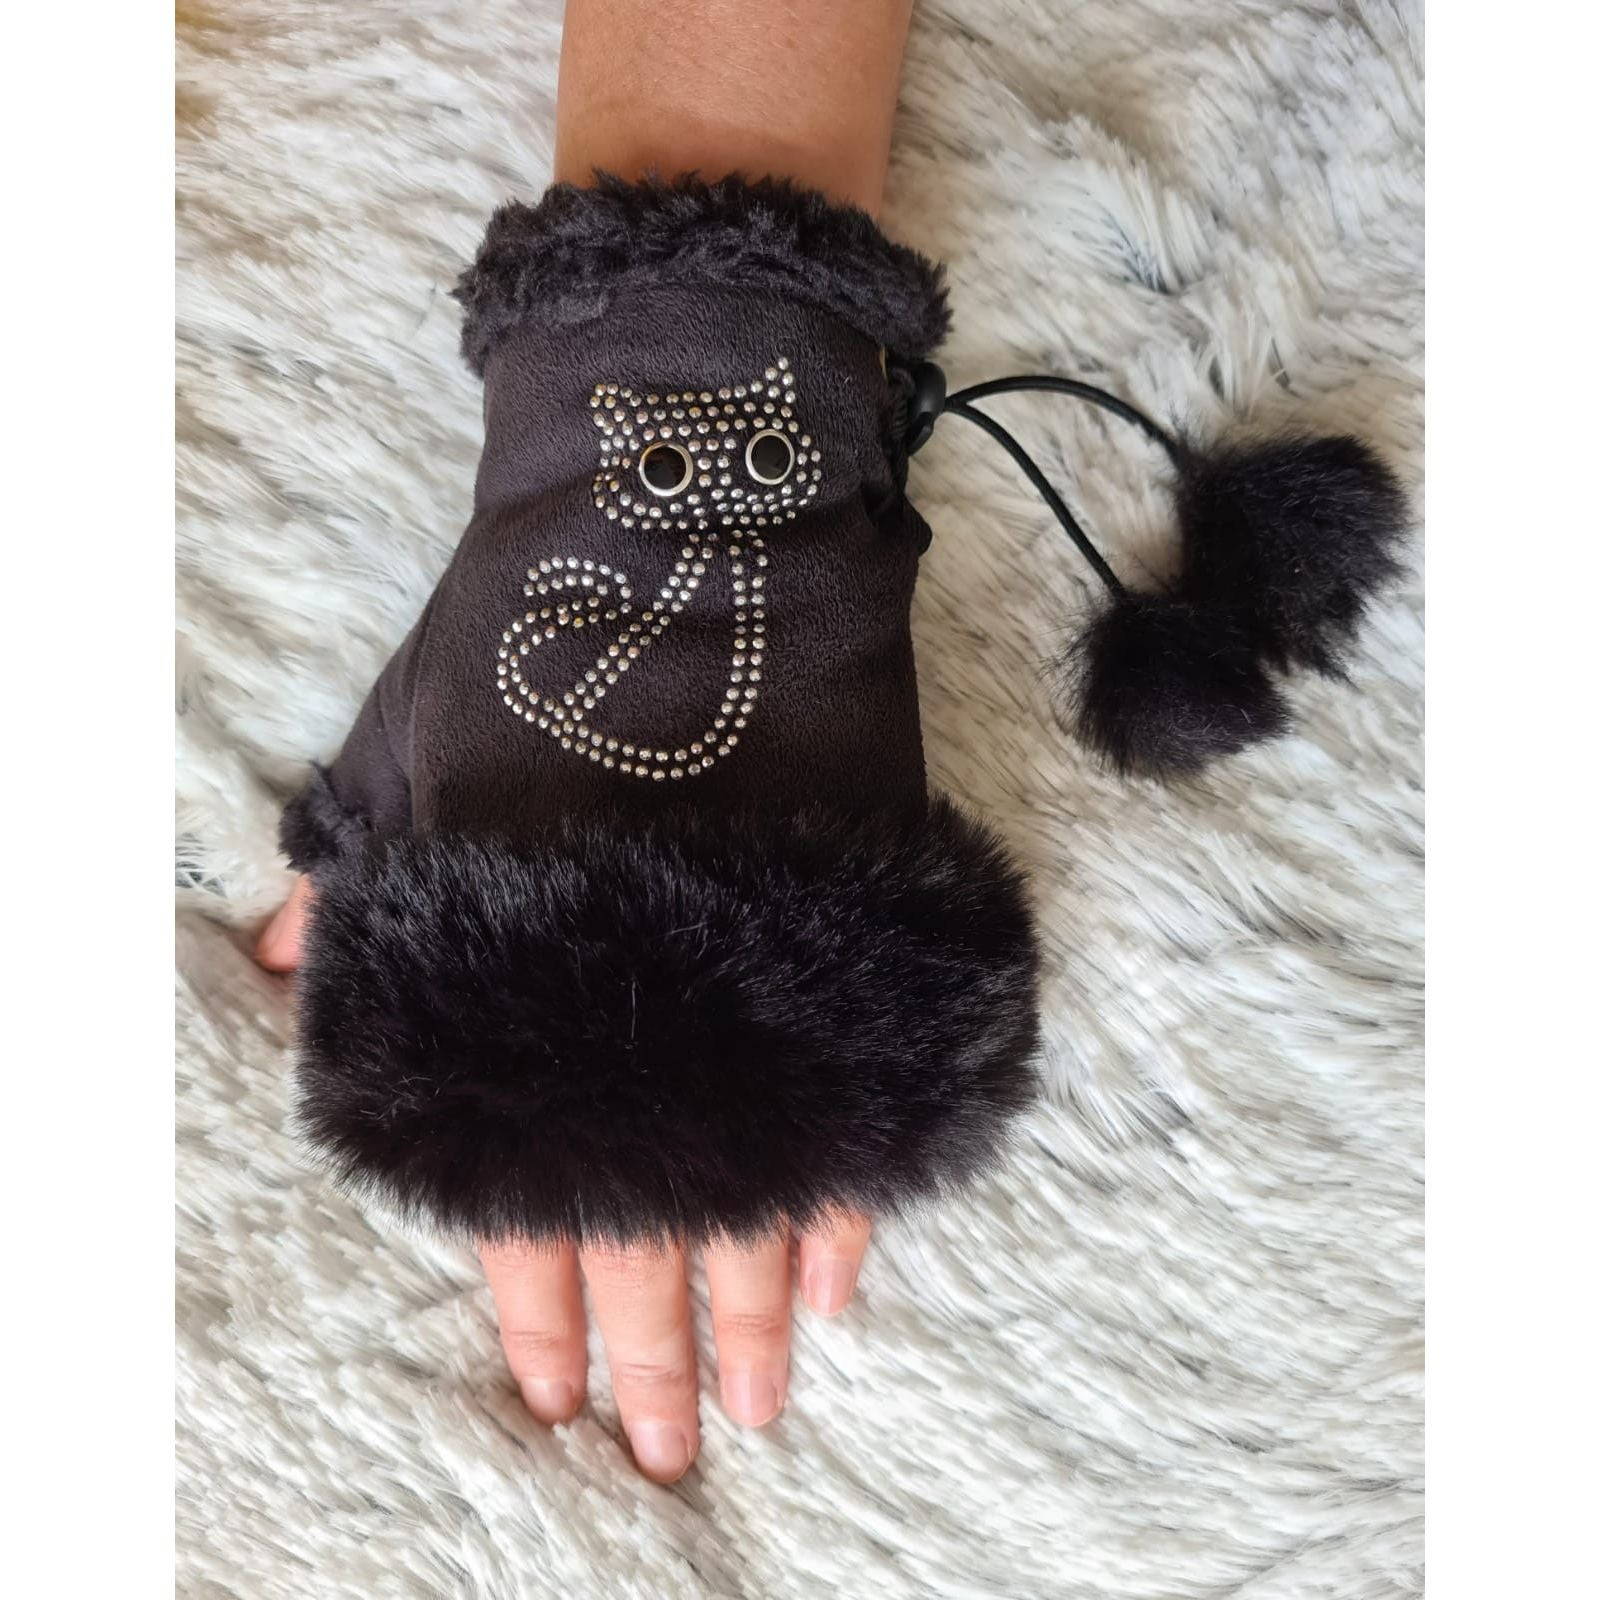 25% OFF Faux Suede Fingerless Mittens